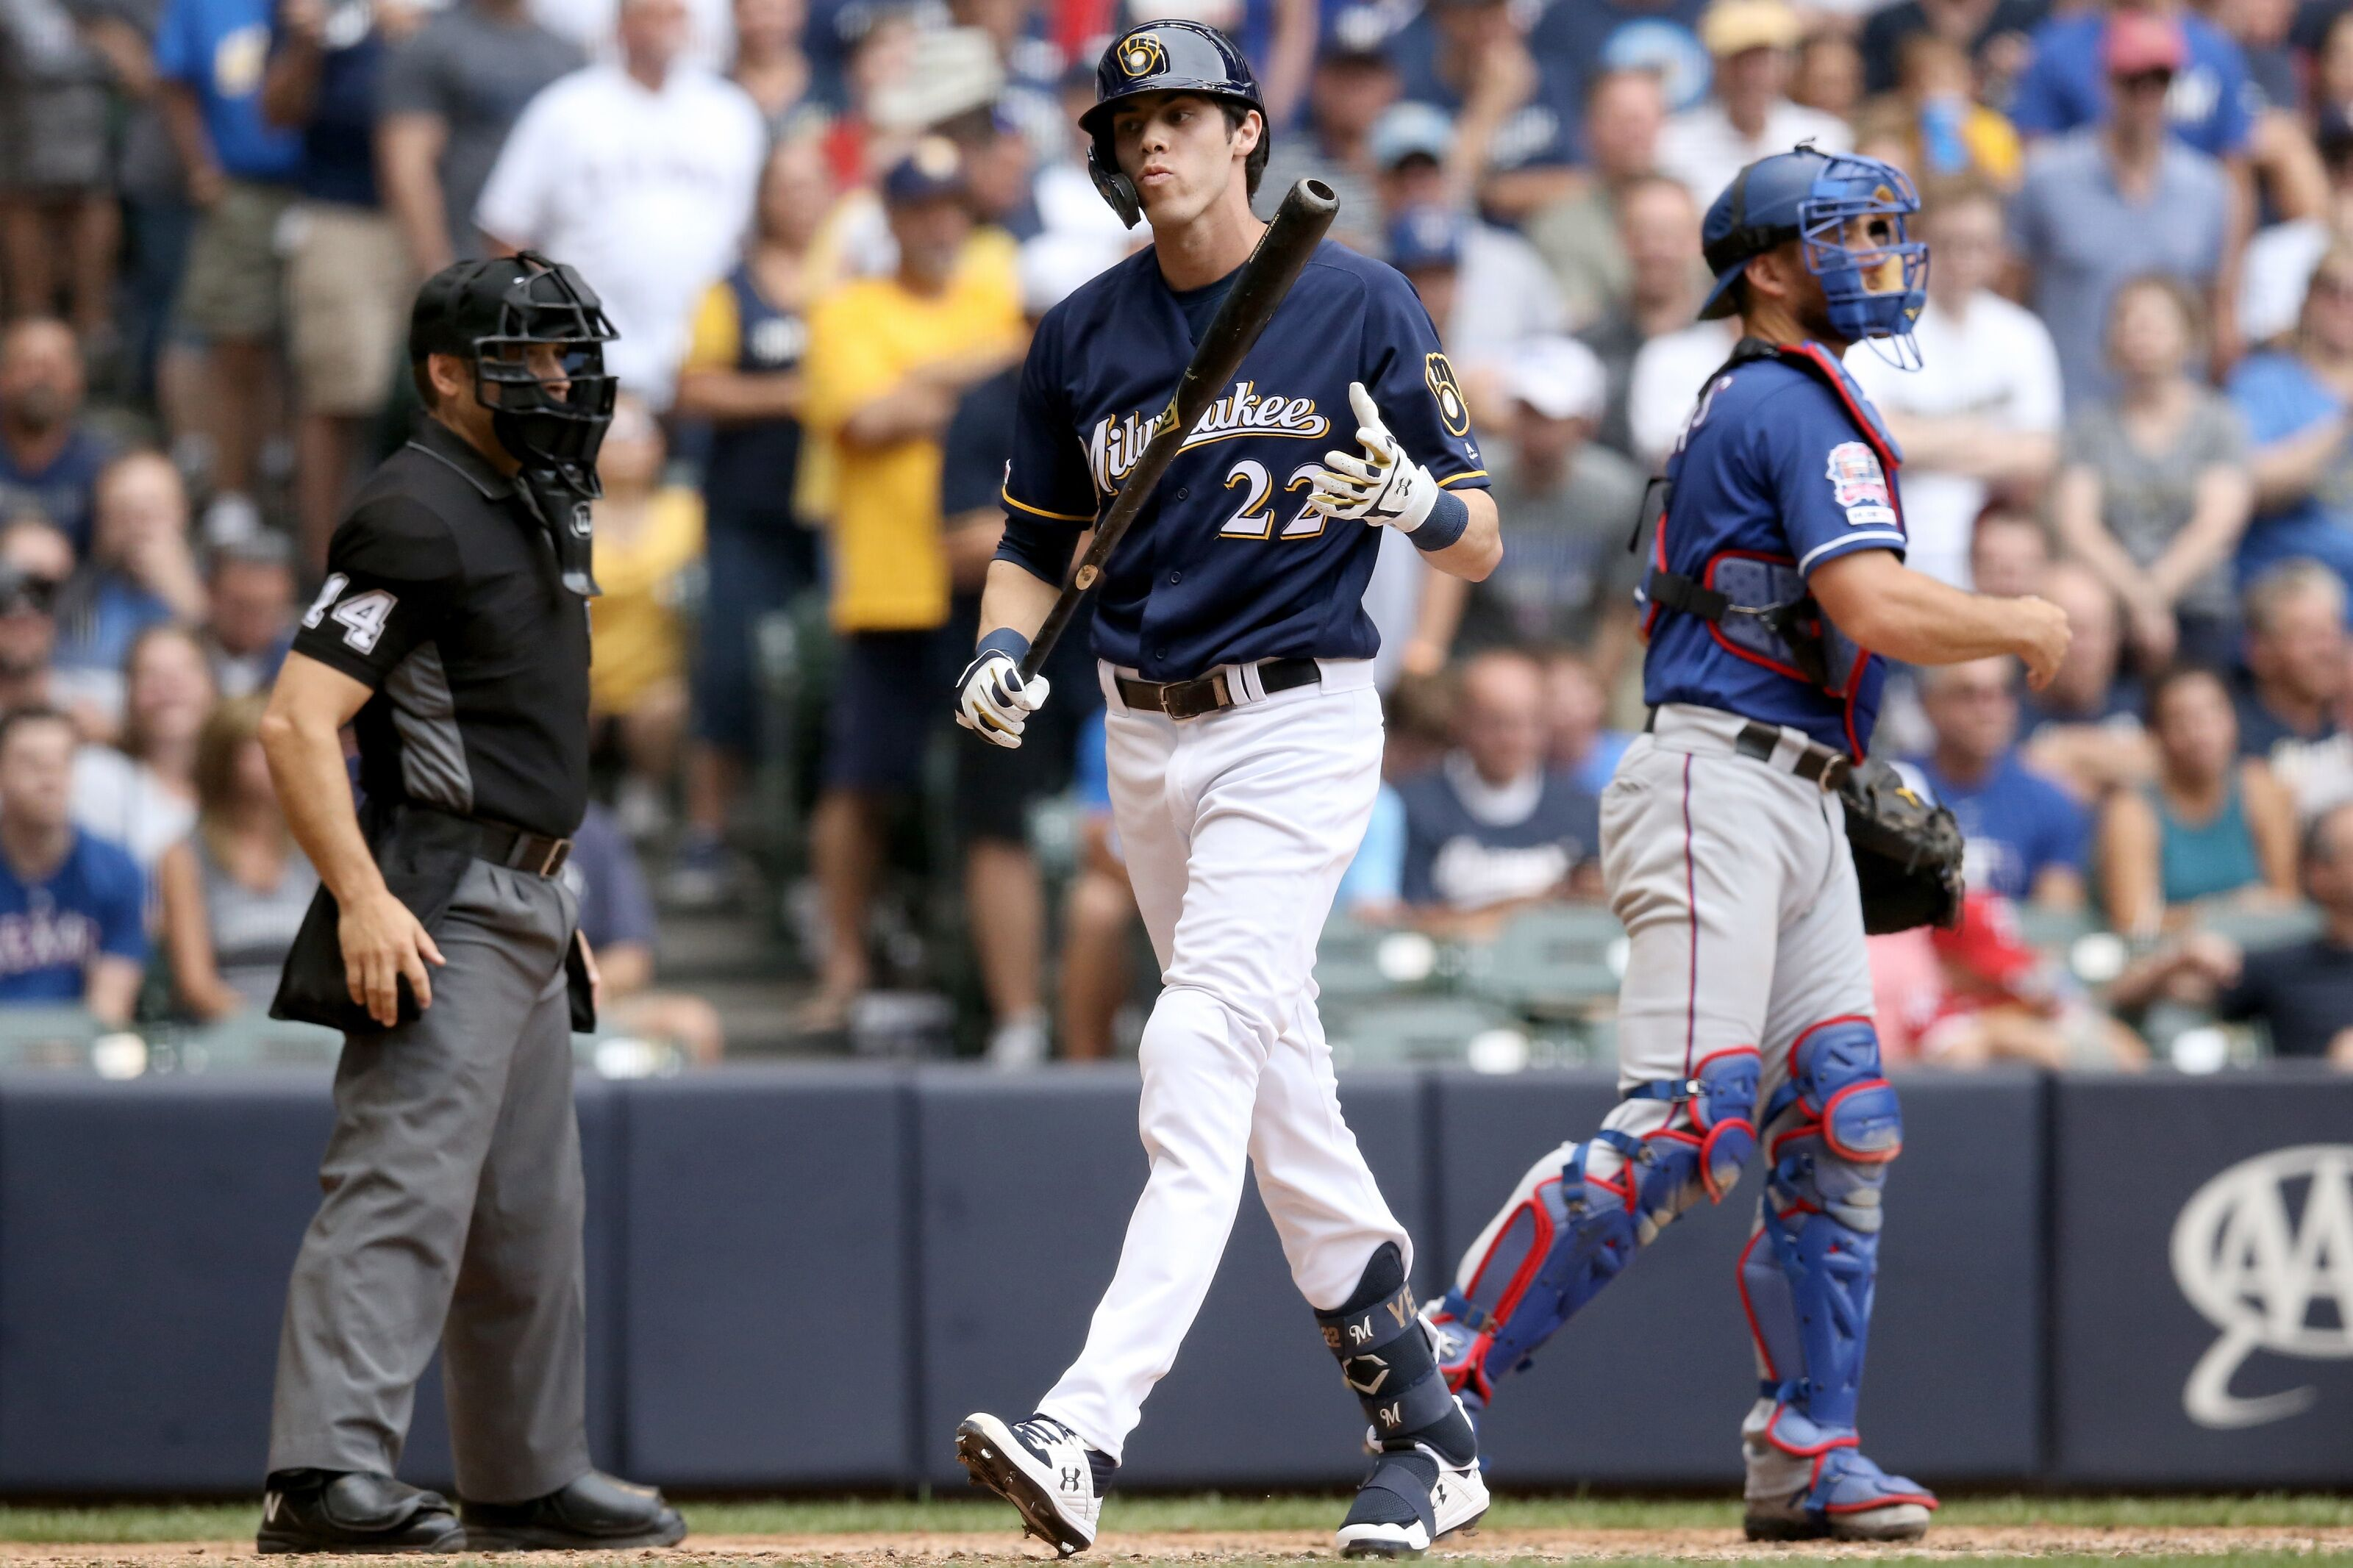 Milwaukee Brewers: When will Christian Yelich return to the lineup?